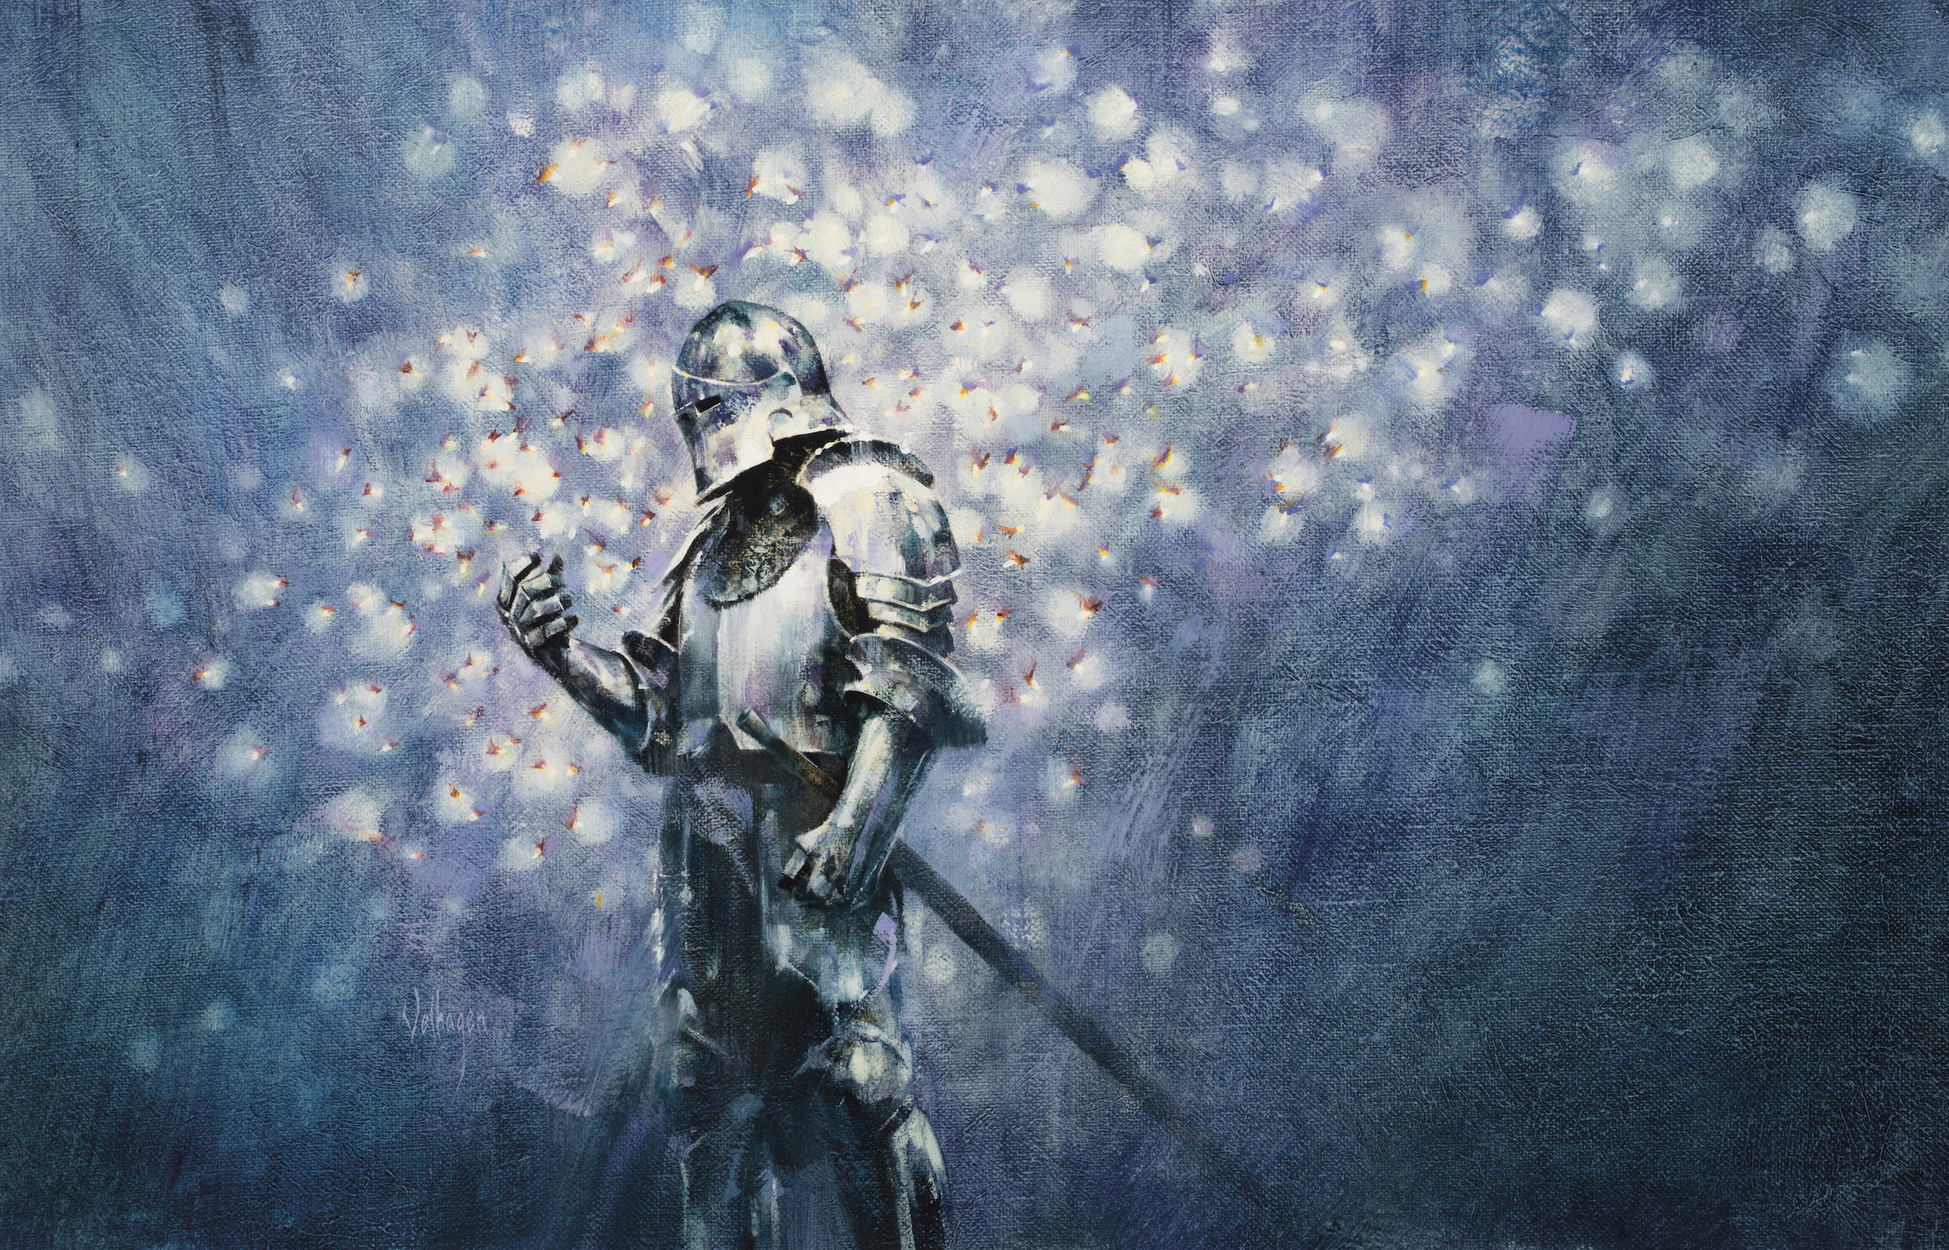 Knight Lights Artwork by Eric Velhagen